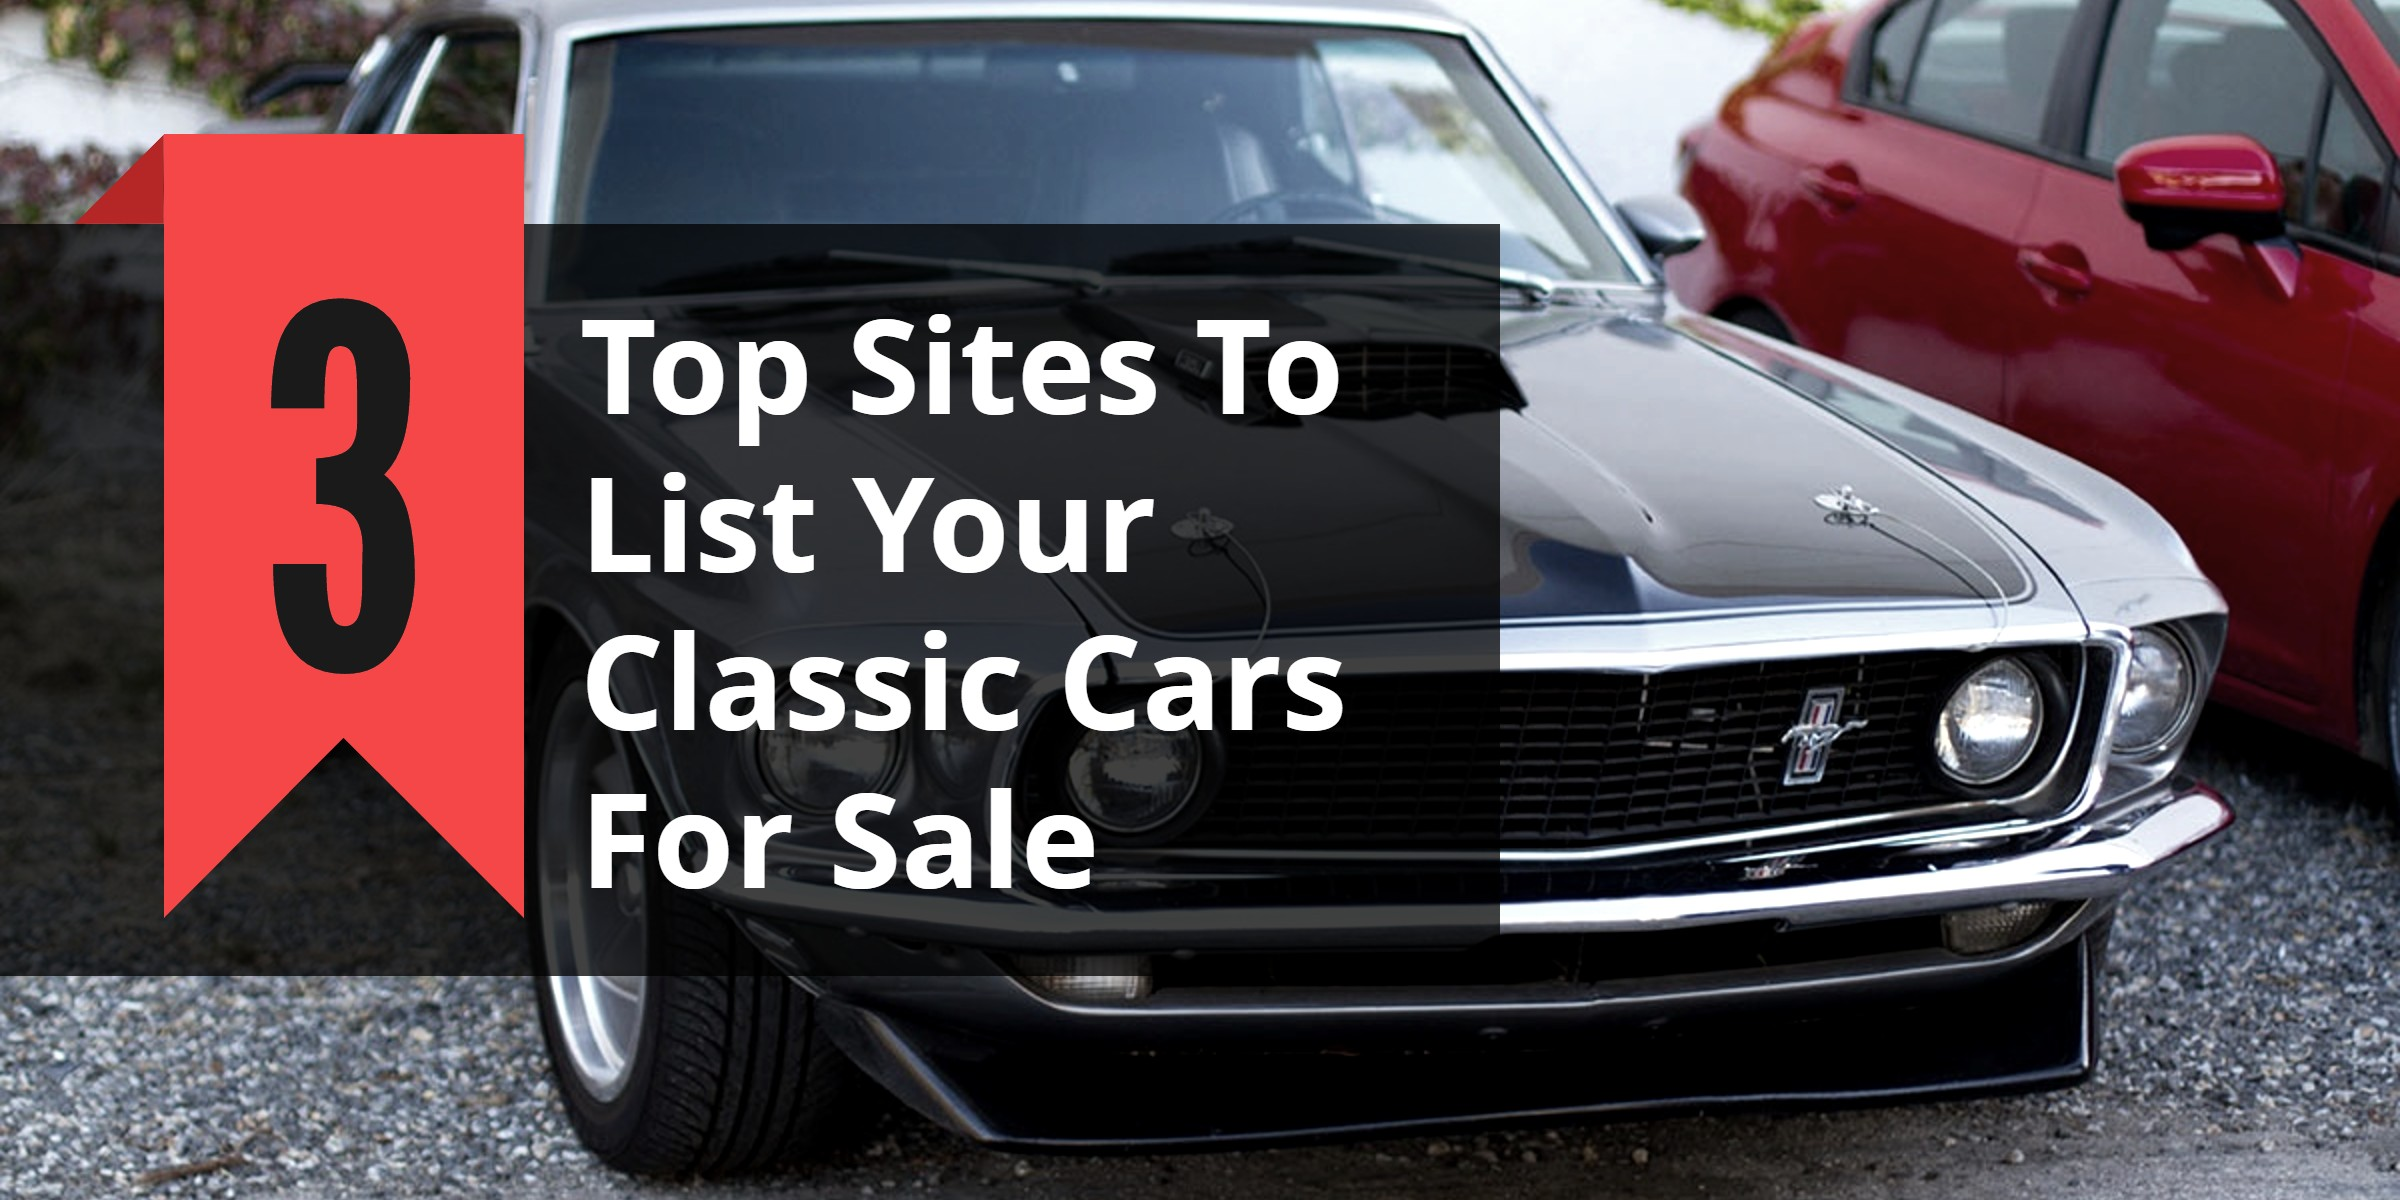 Top sites to list your classic cars for sale.jpg